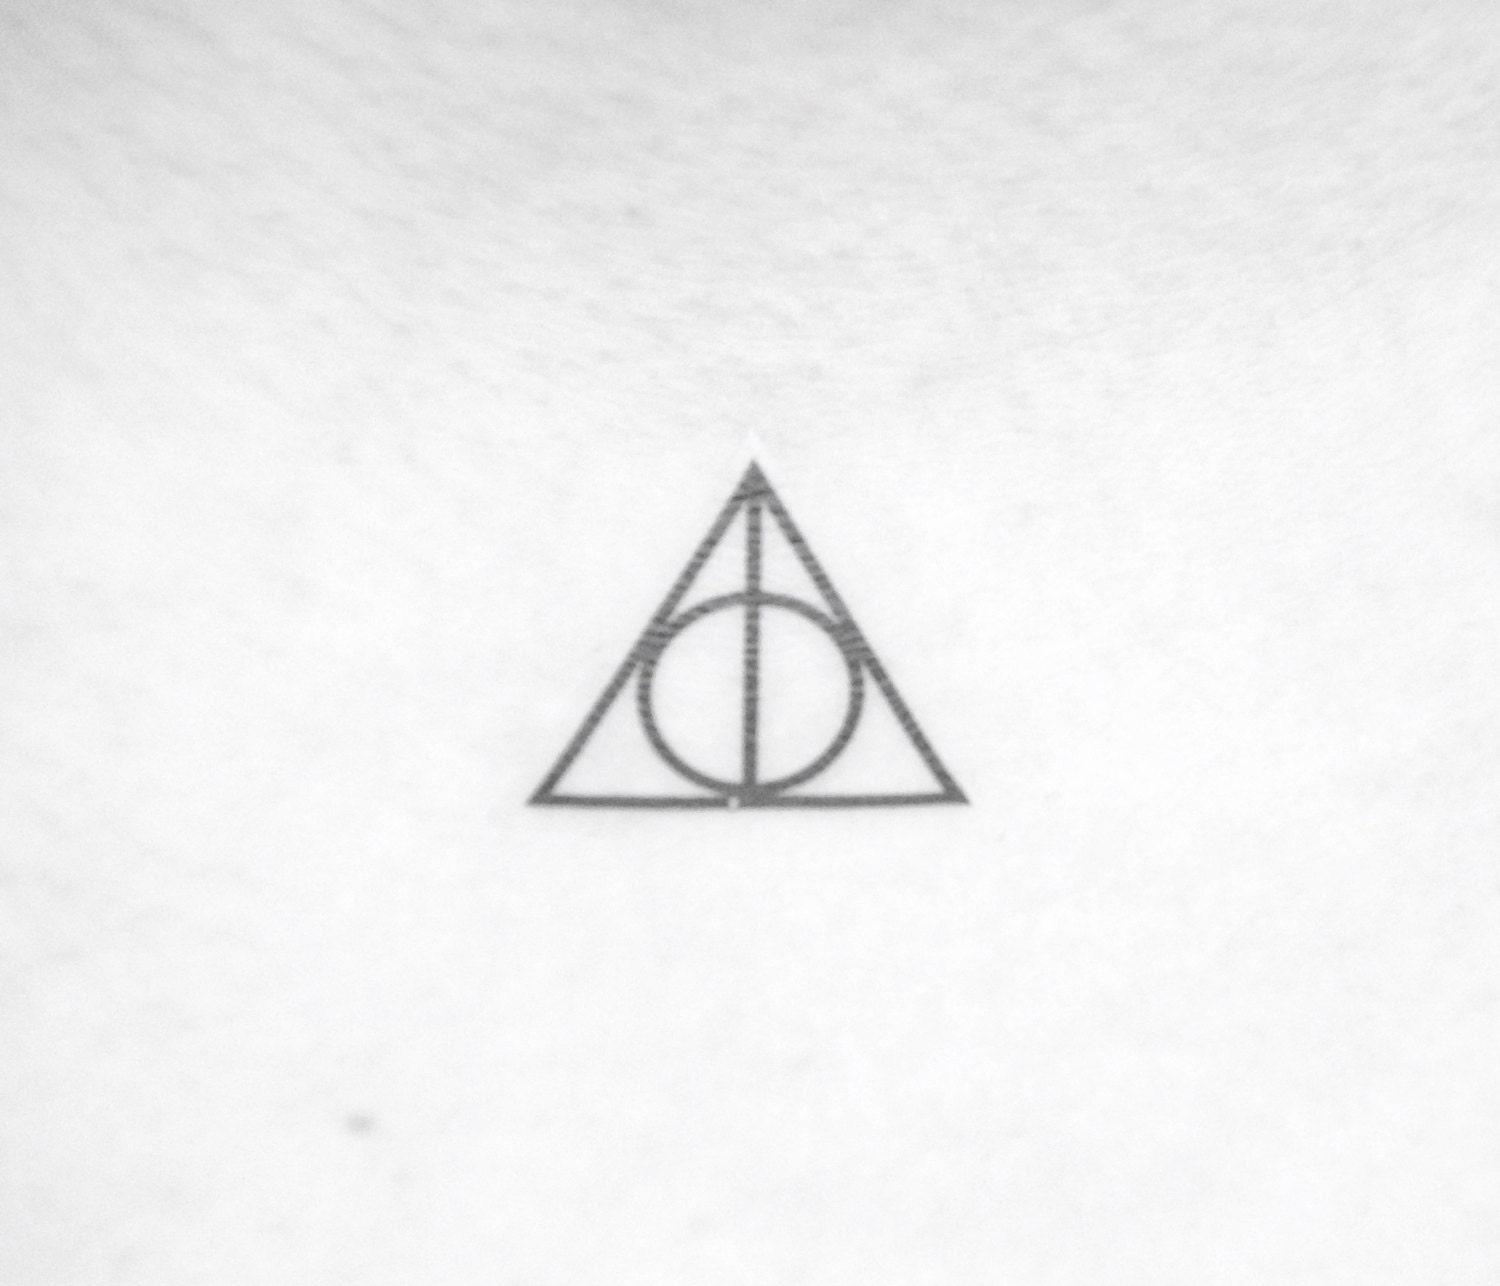 Harry potter deathly hallows temporary tattoo request a custom order and have something made just for you biocorpaavc Choice Image